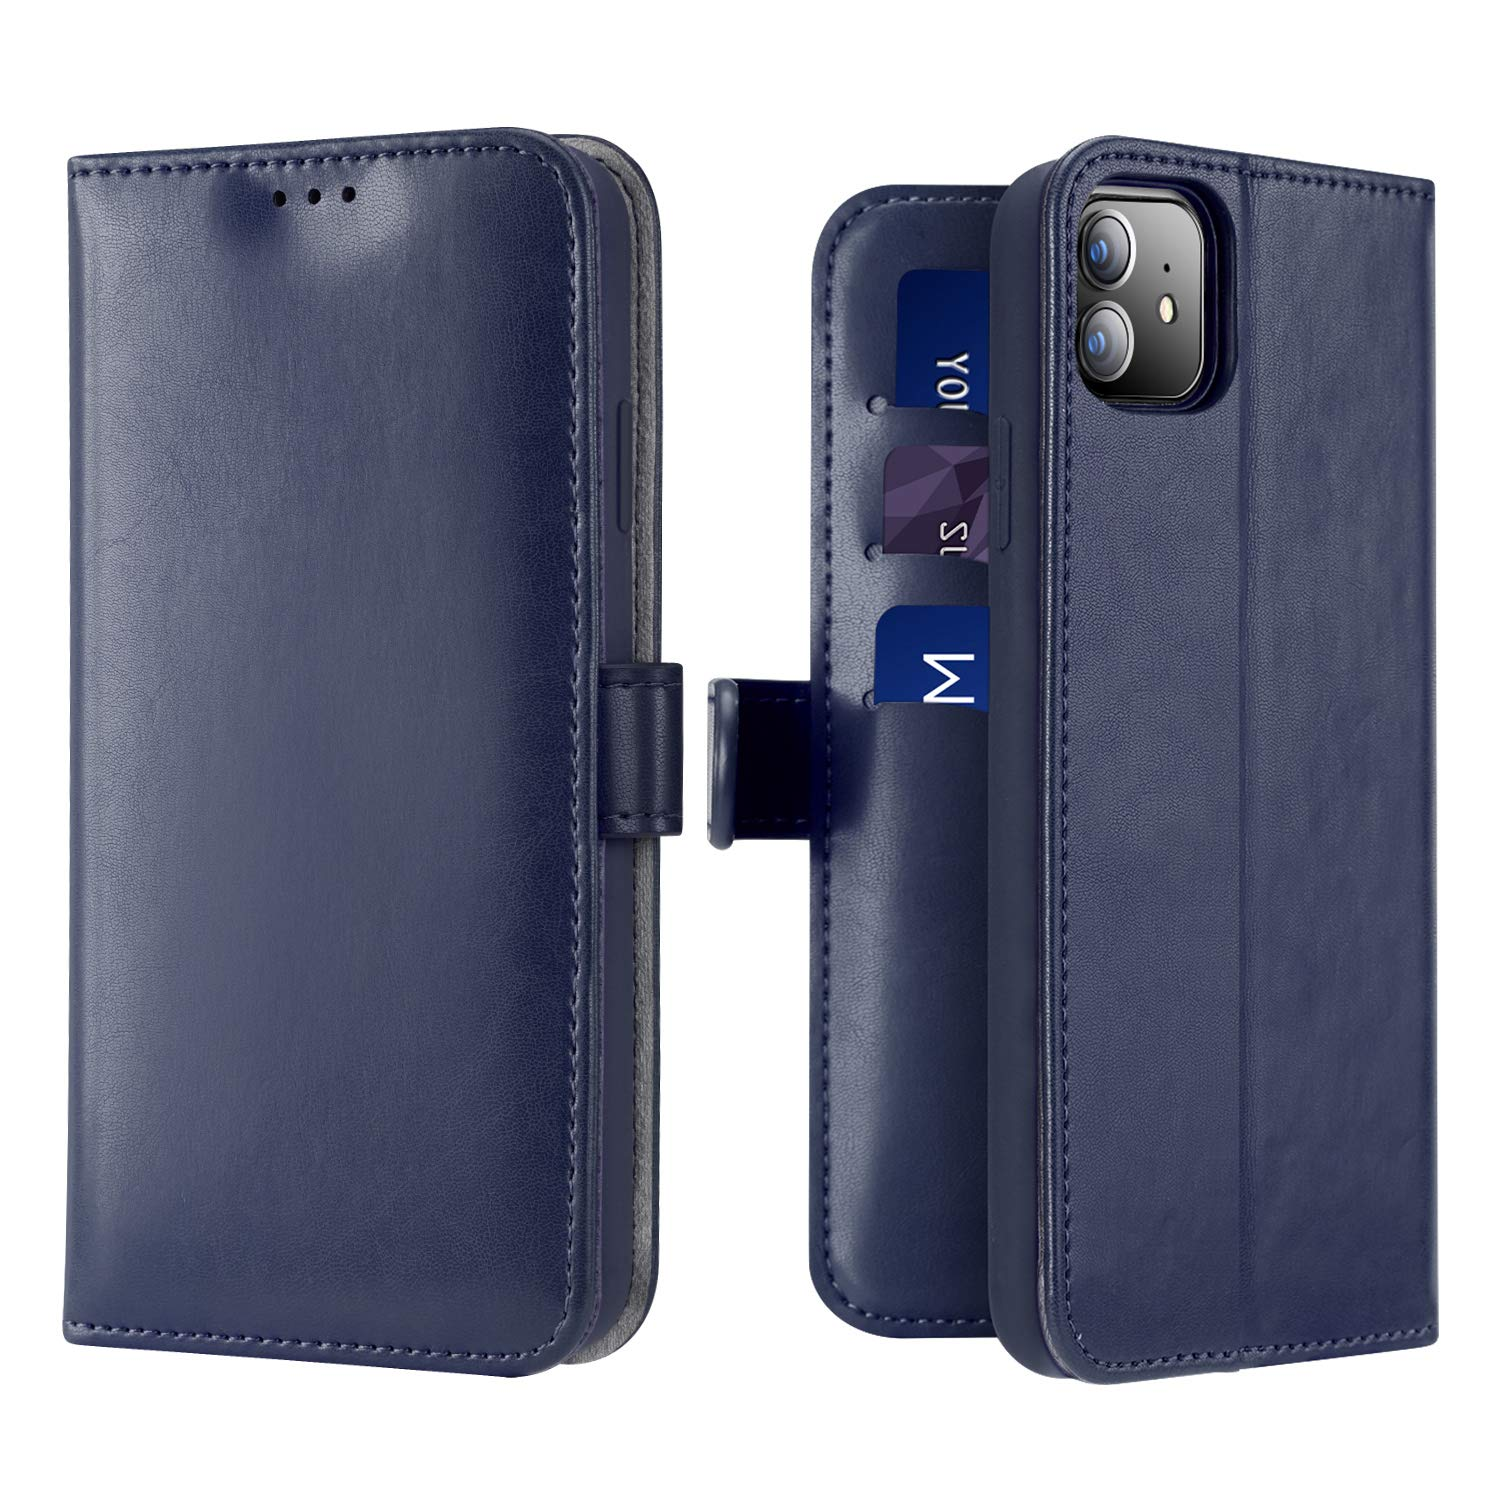 DUX DUCIS Wallet Case for New iPhone 11, Soft PU Leather Shockproof Flip Folio Wallet Cover with Card Slots, Magnetic Closure, Kickstand for New iPhone 11 (Blue)